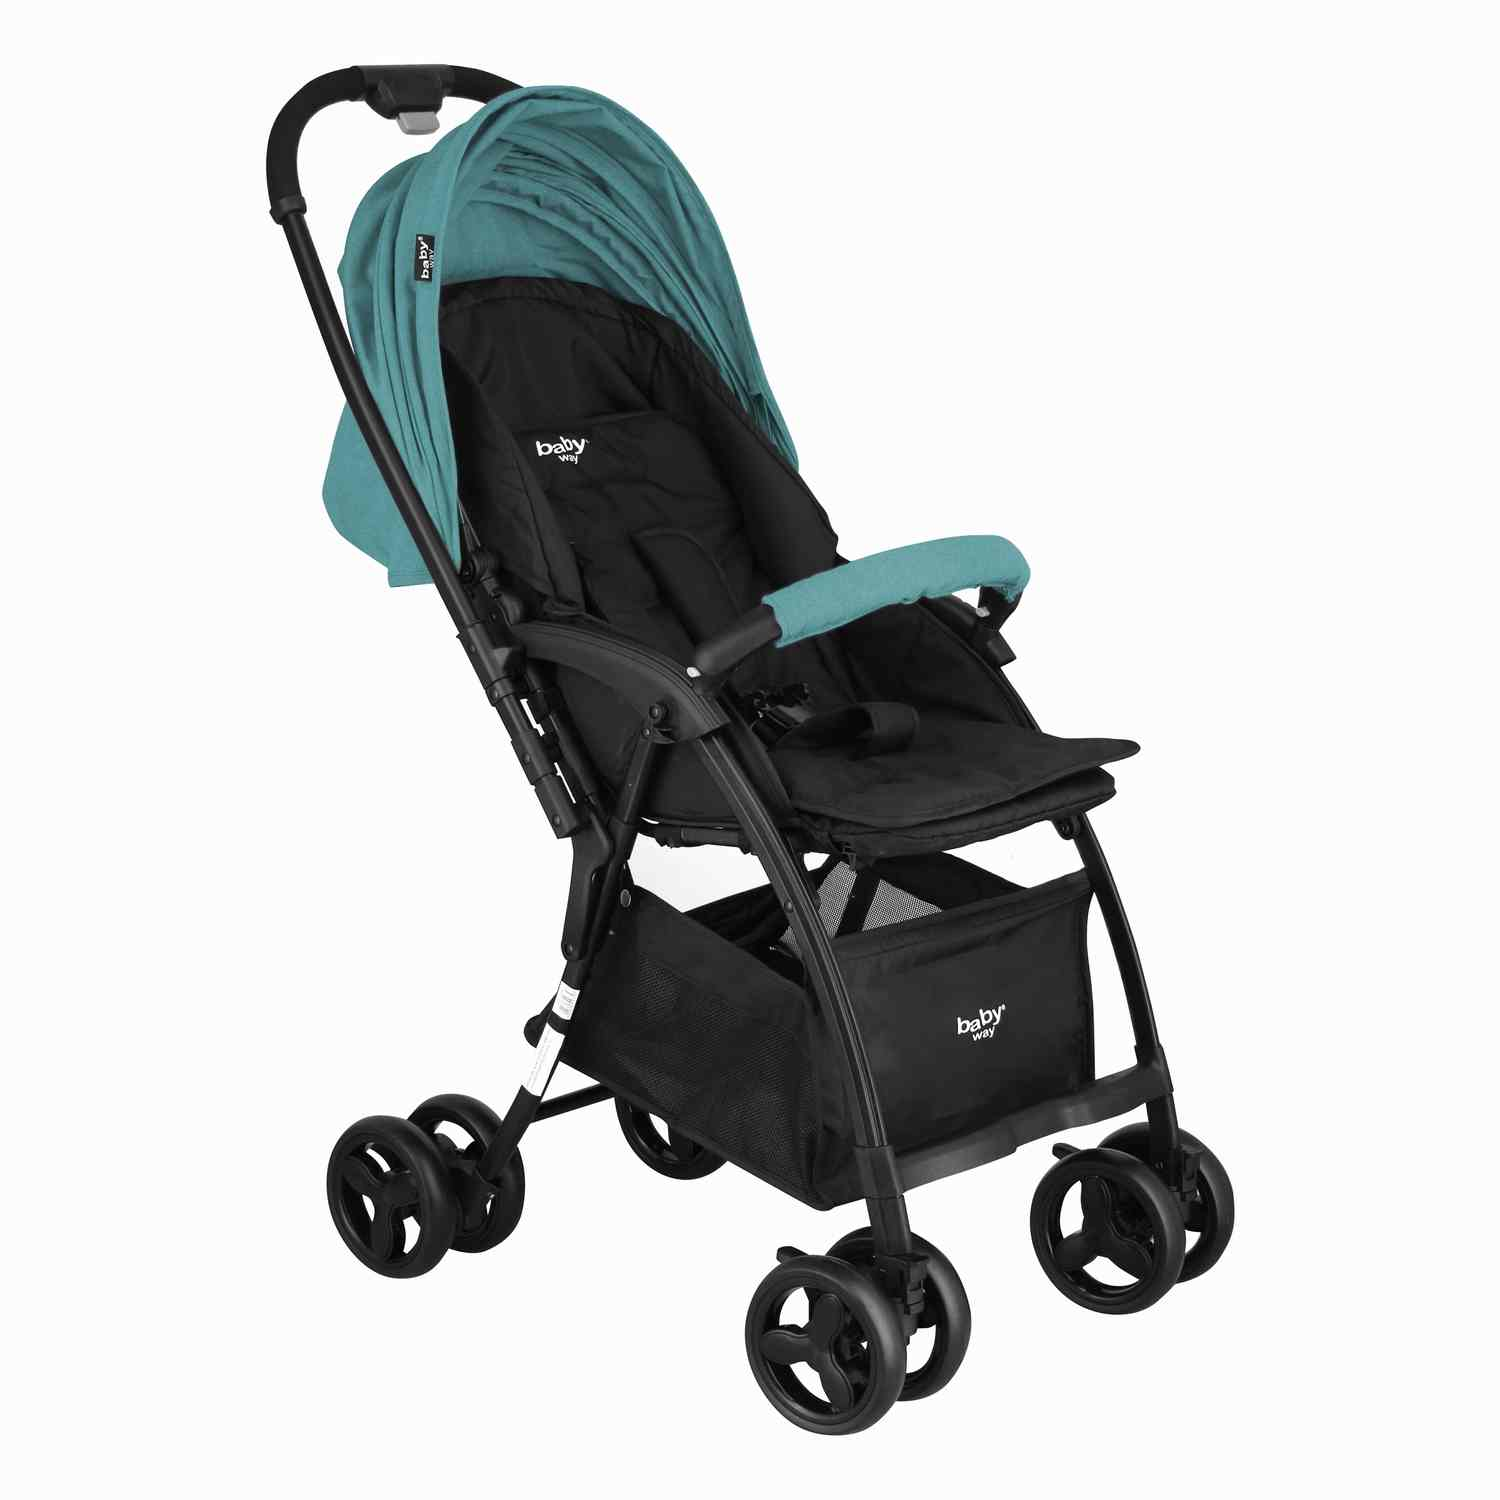 Coche Paseo  Ultra Light Baby Way Bw-208F19 Turquesa